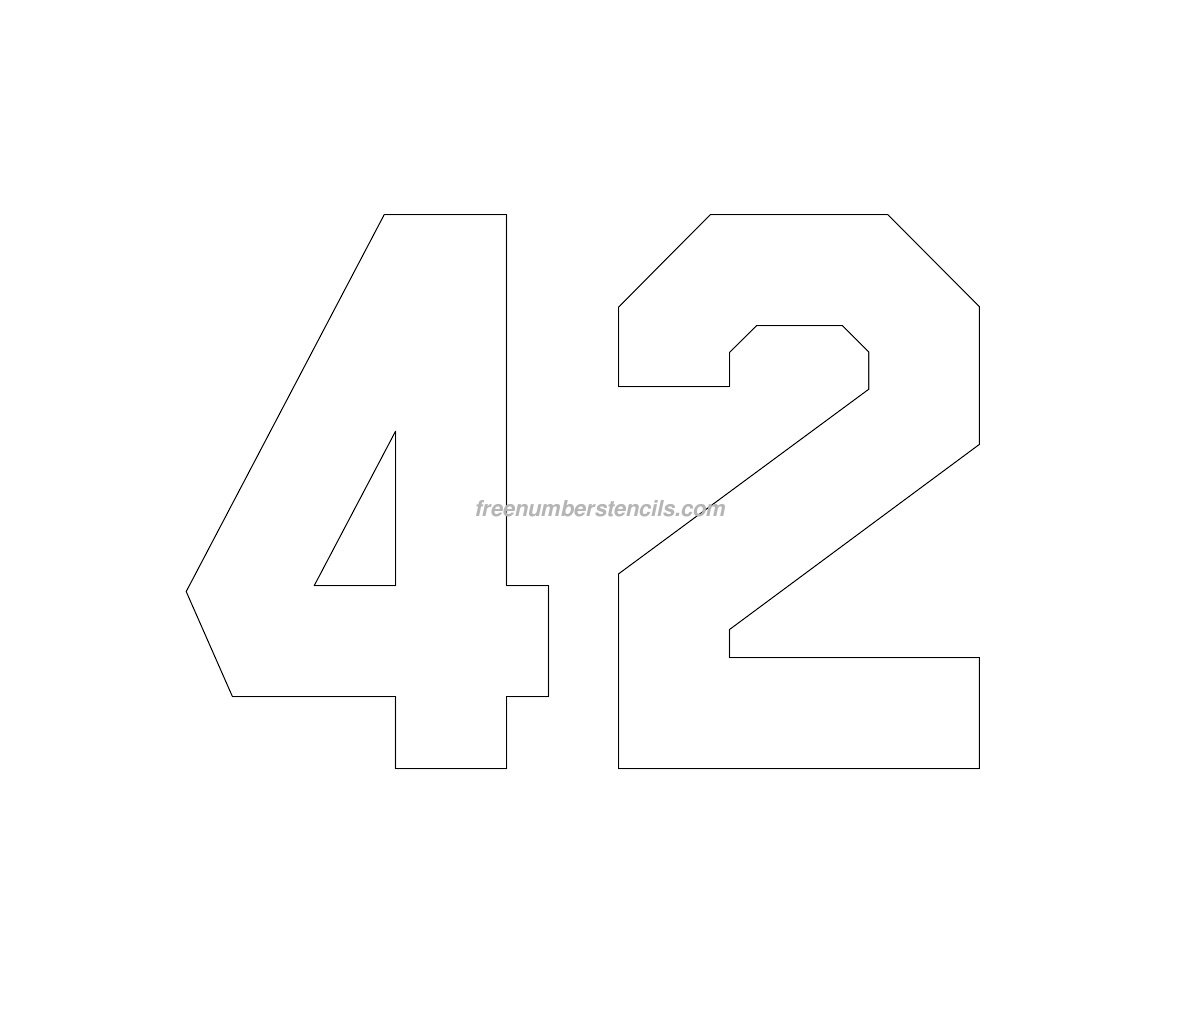 free jersey printable 51 number stencil free jersey printable 42 number stencil